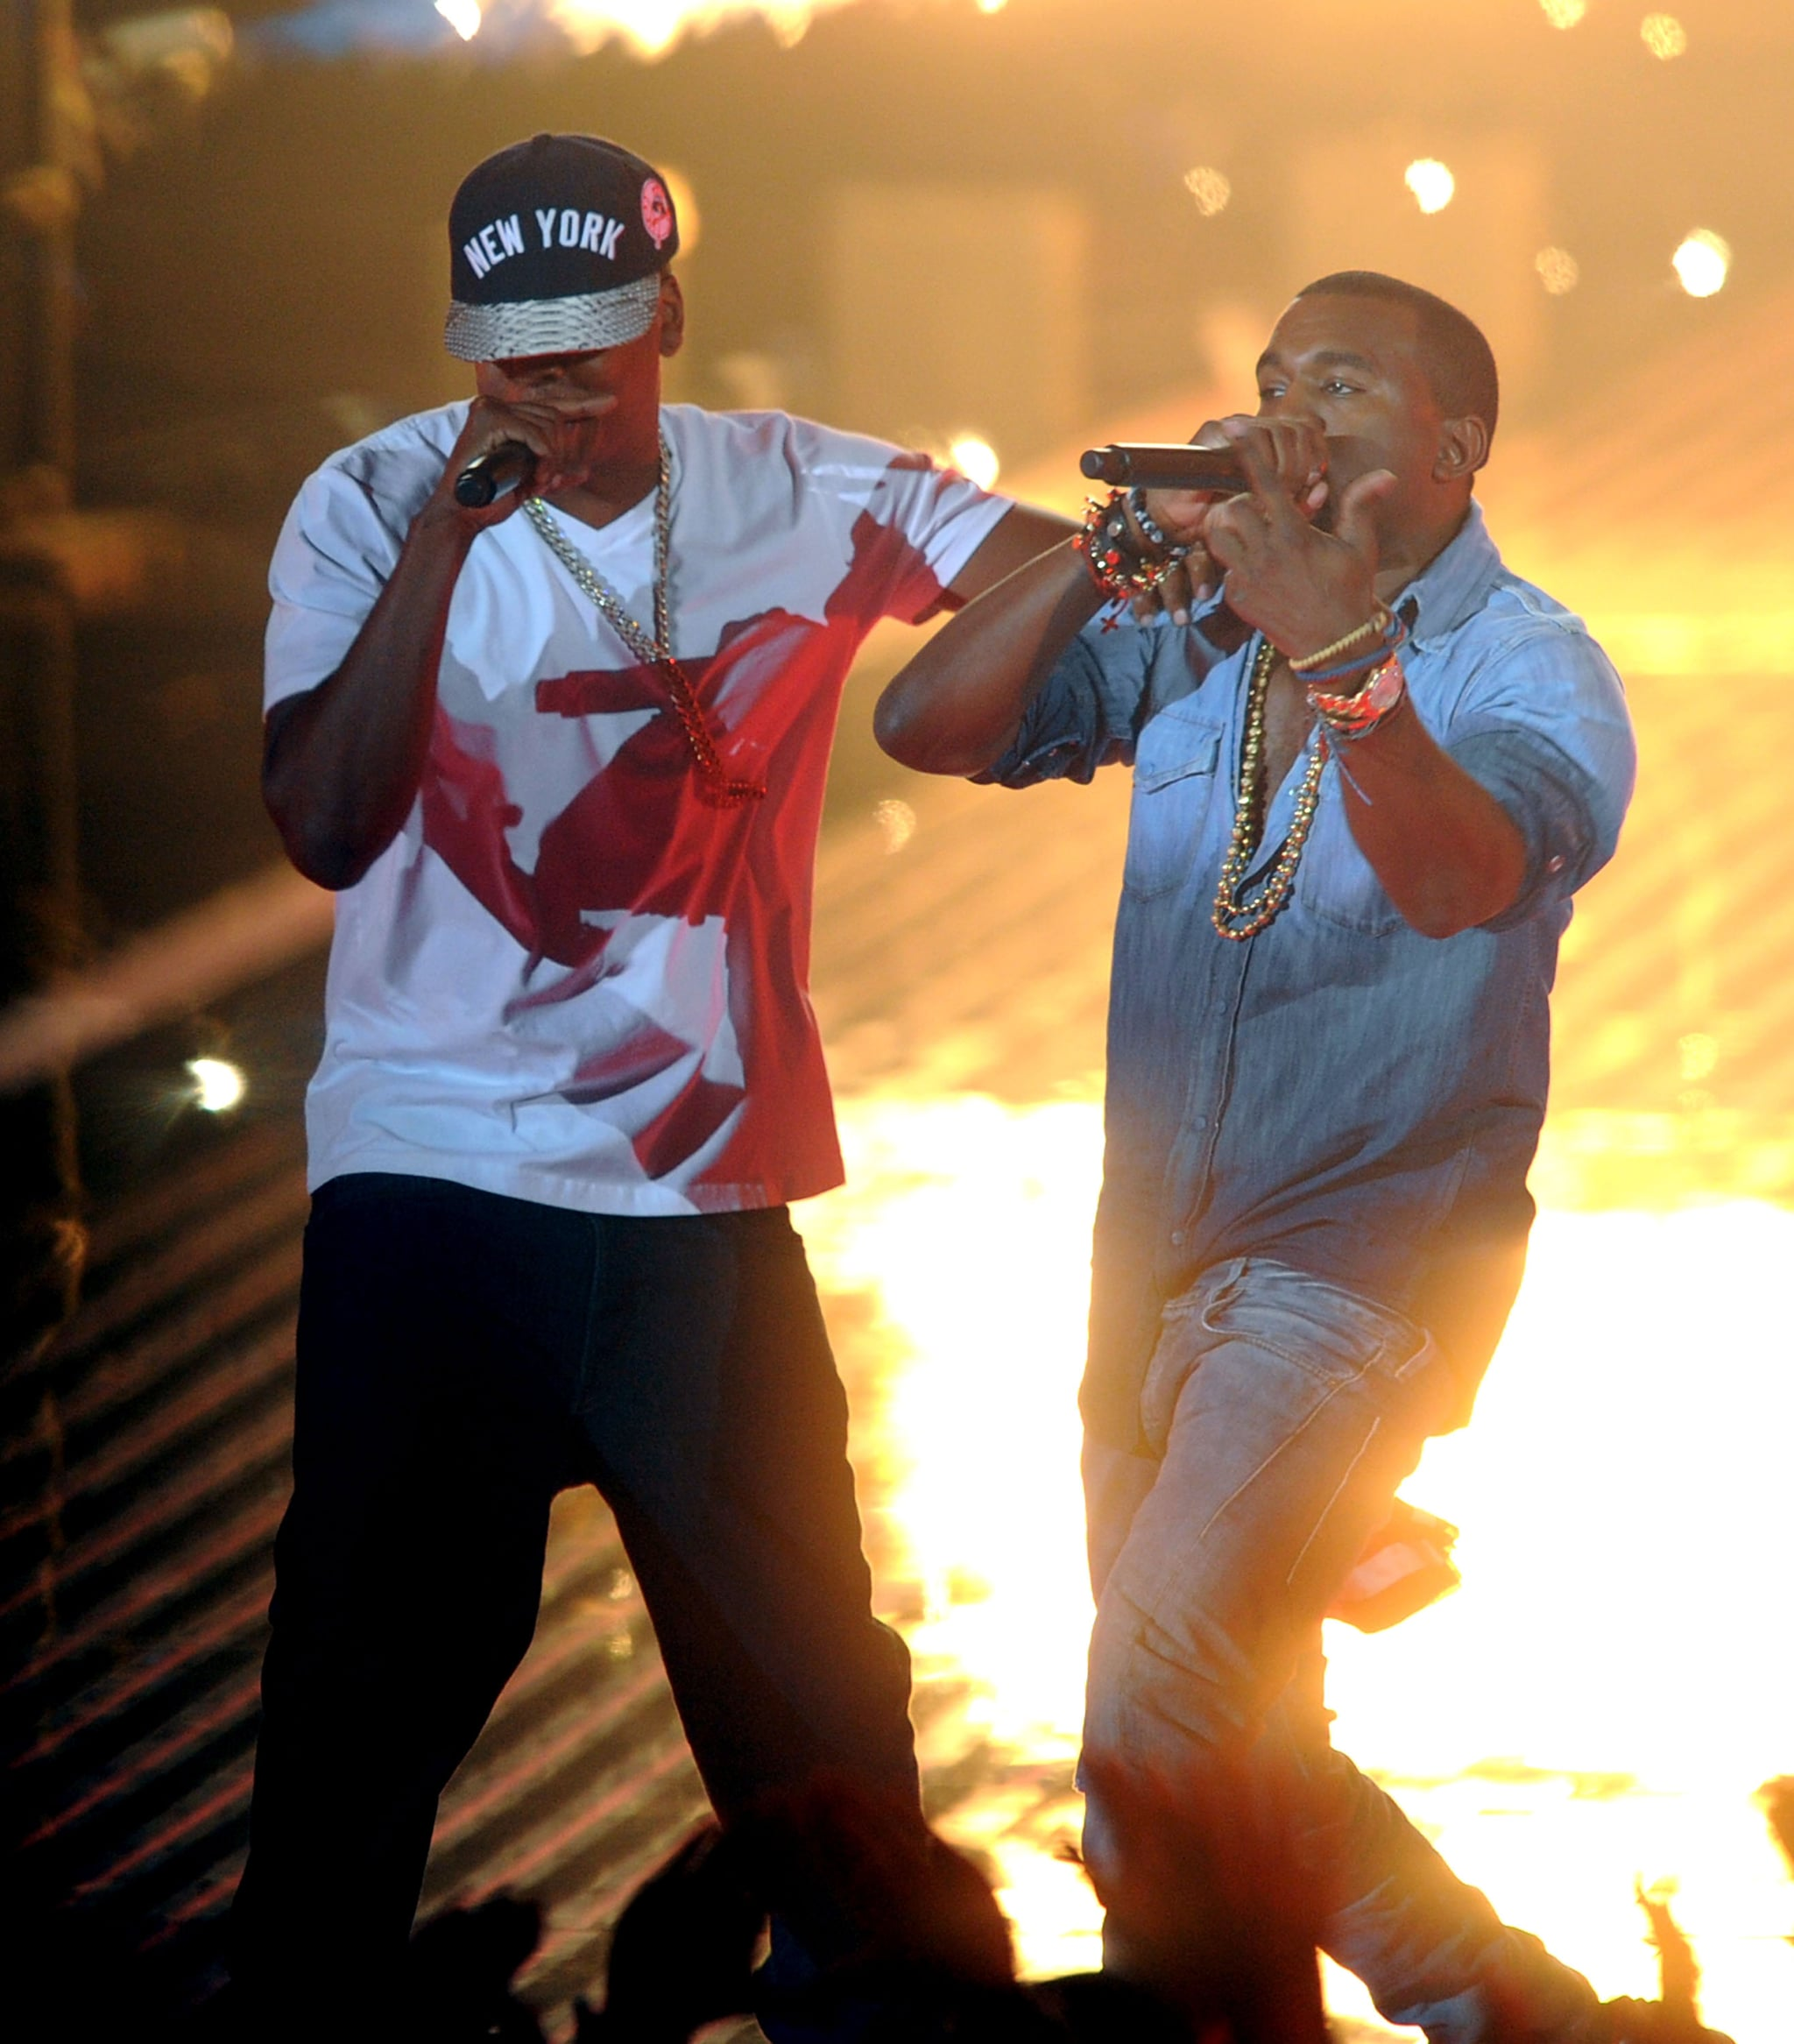 Jay Z and Kanye West